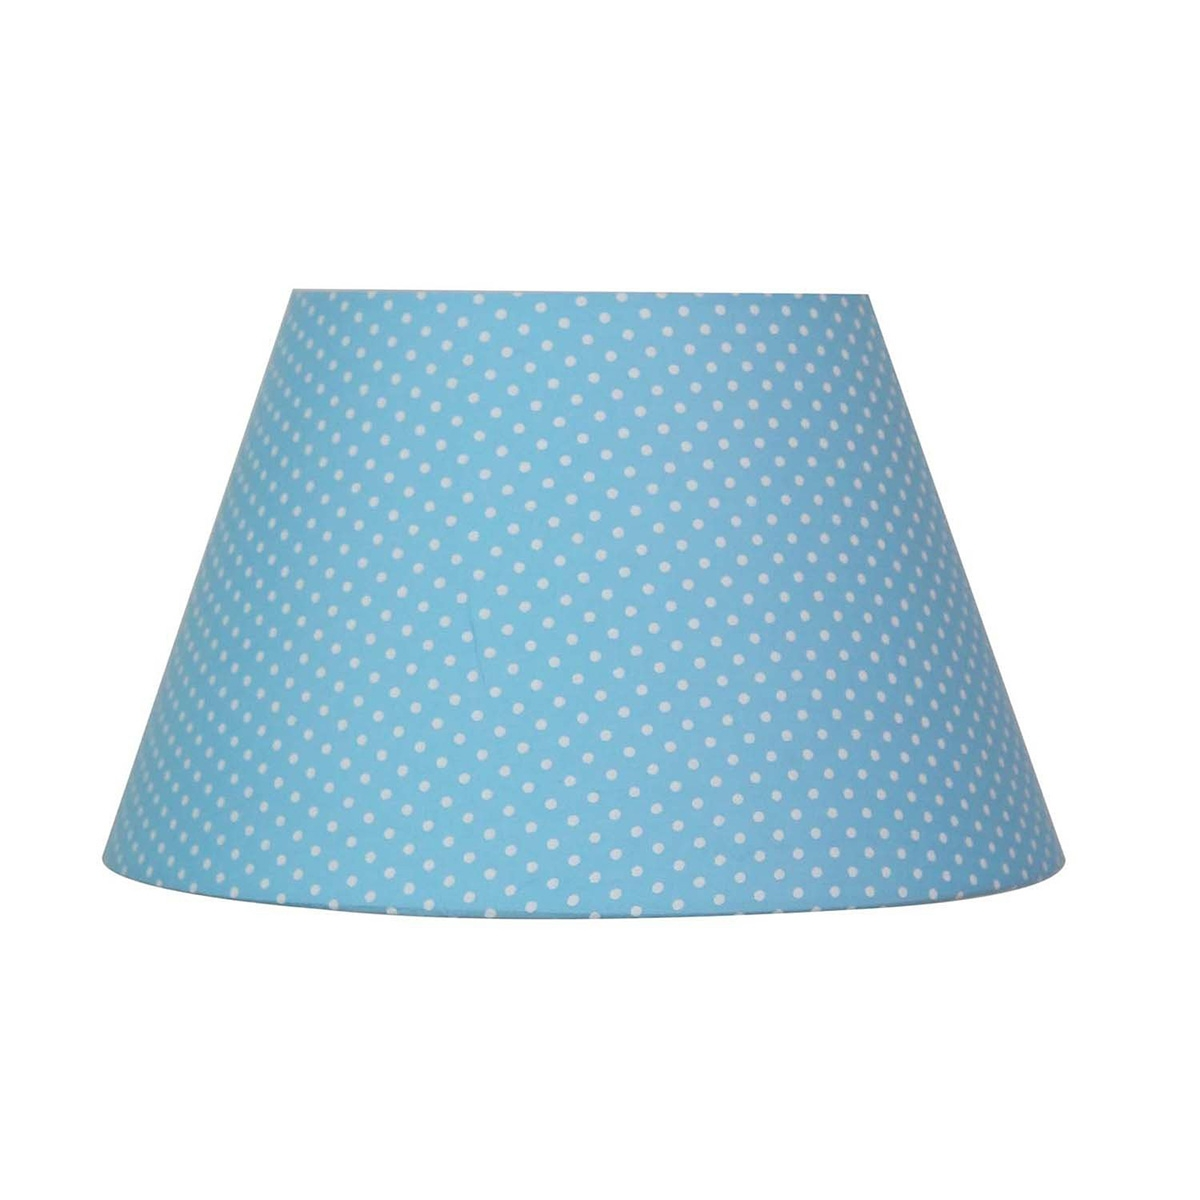 Абажур Lamplandia 7797-1 blue with white dots